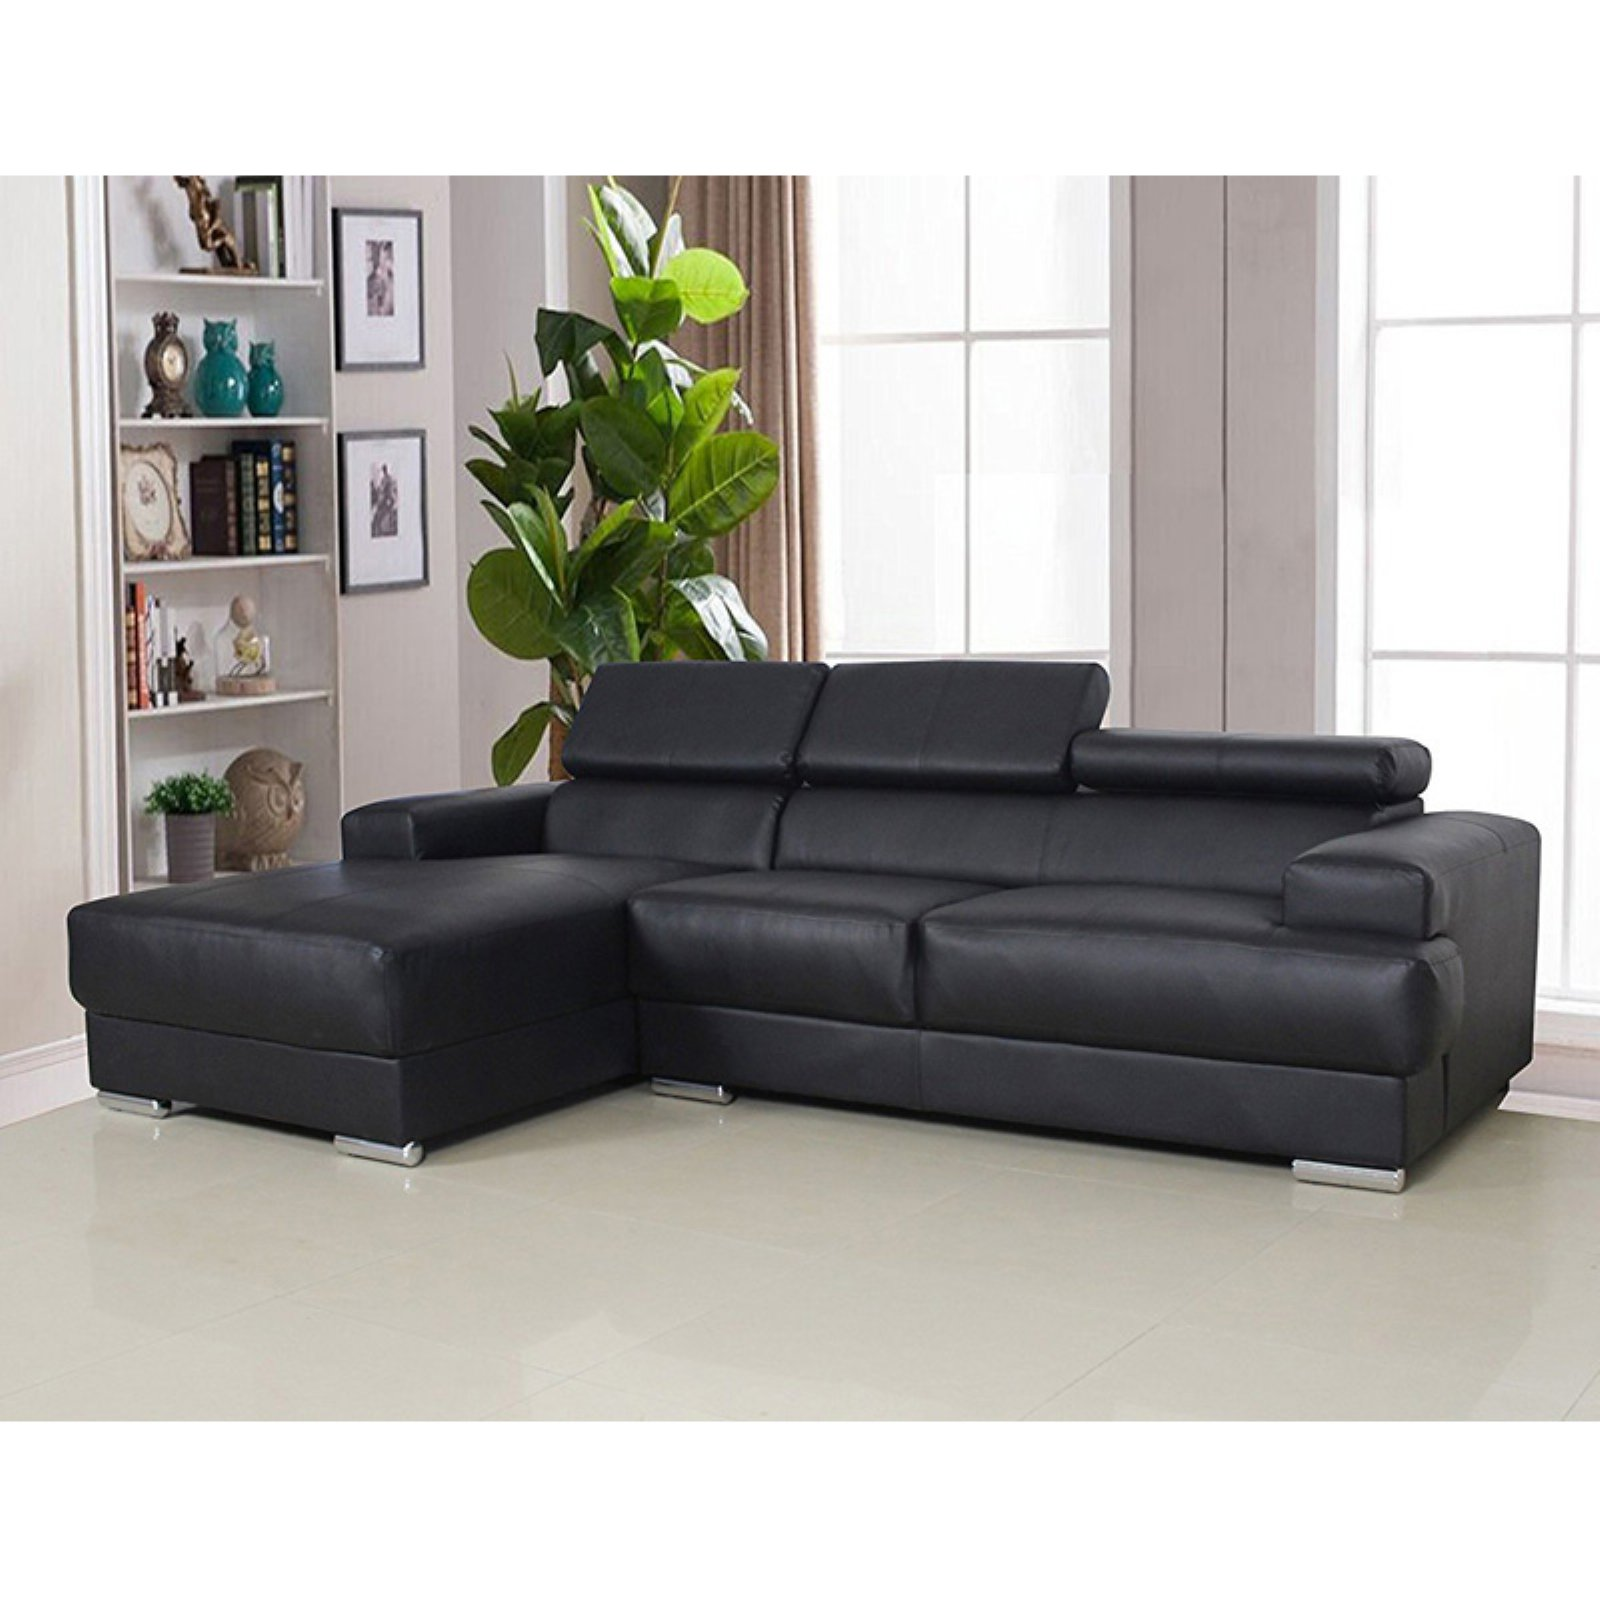 U.S. Pride Furniture Direct Gabriel Contemporary Sofa Sectional